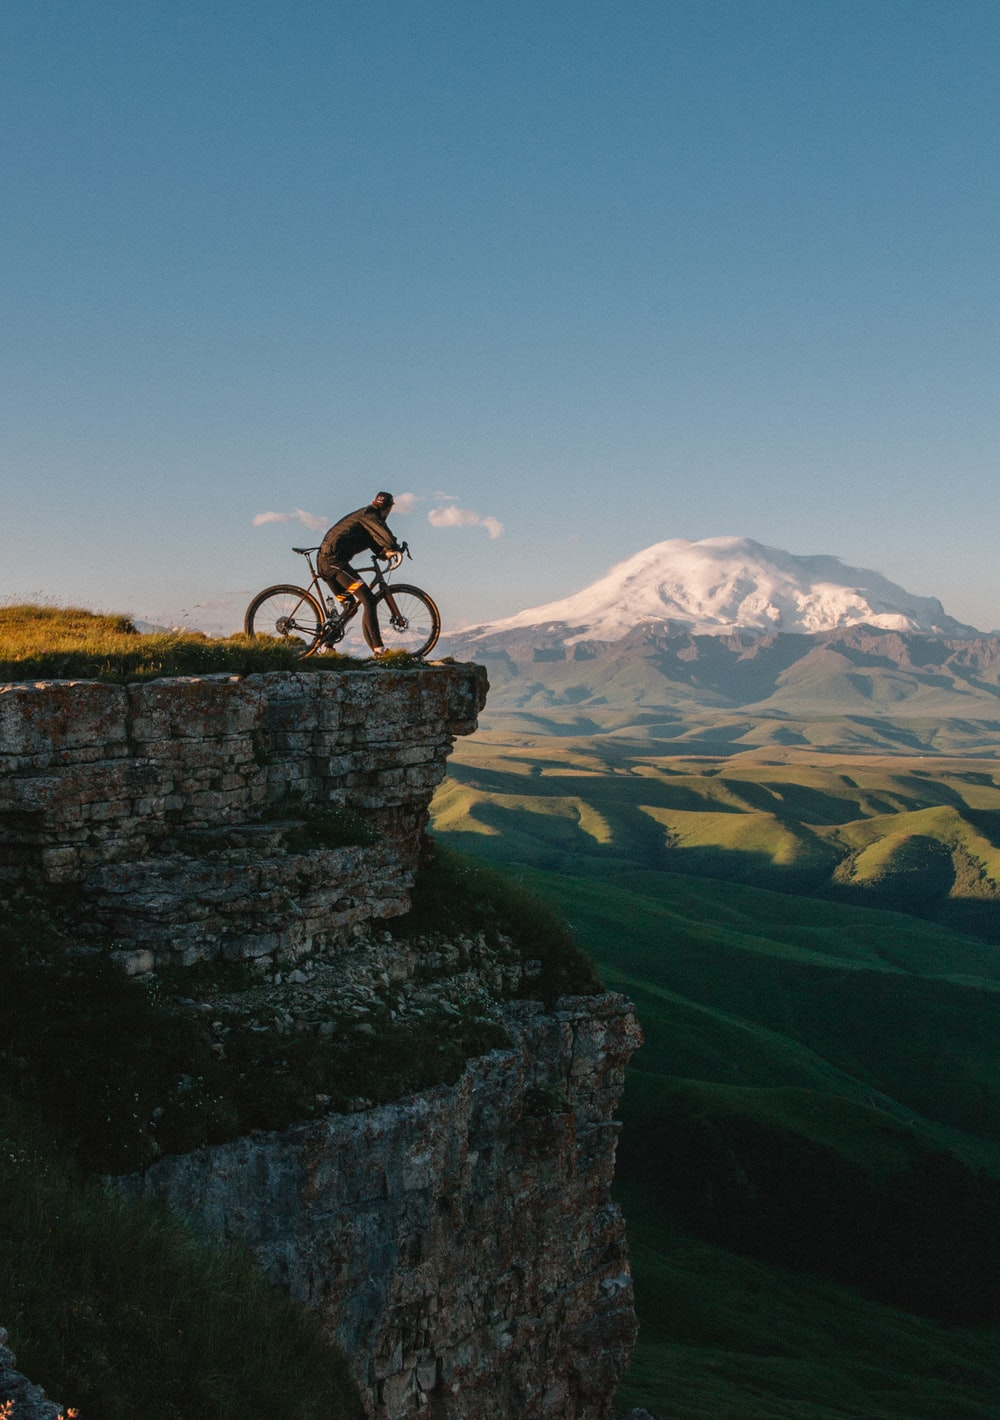 100 Cycling Pictures HD Download Free Images & Stock Photos